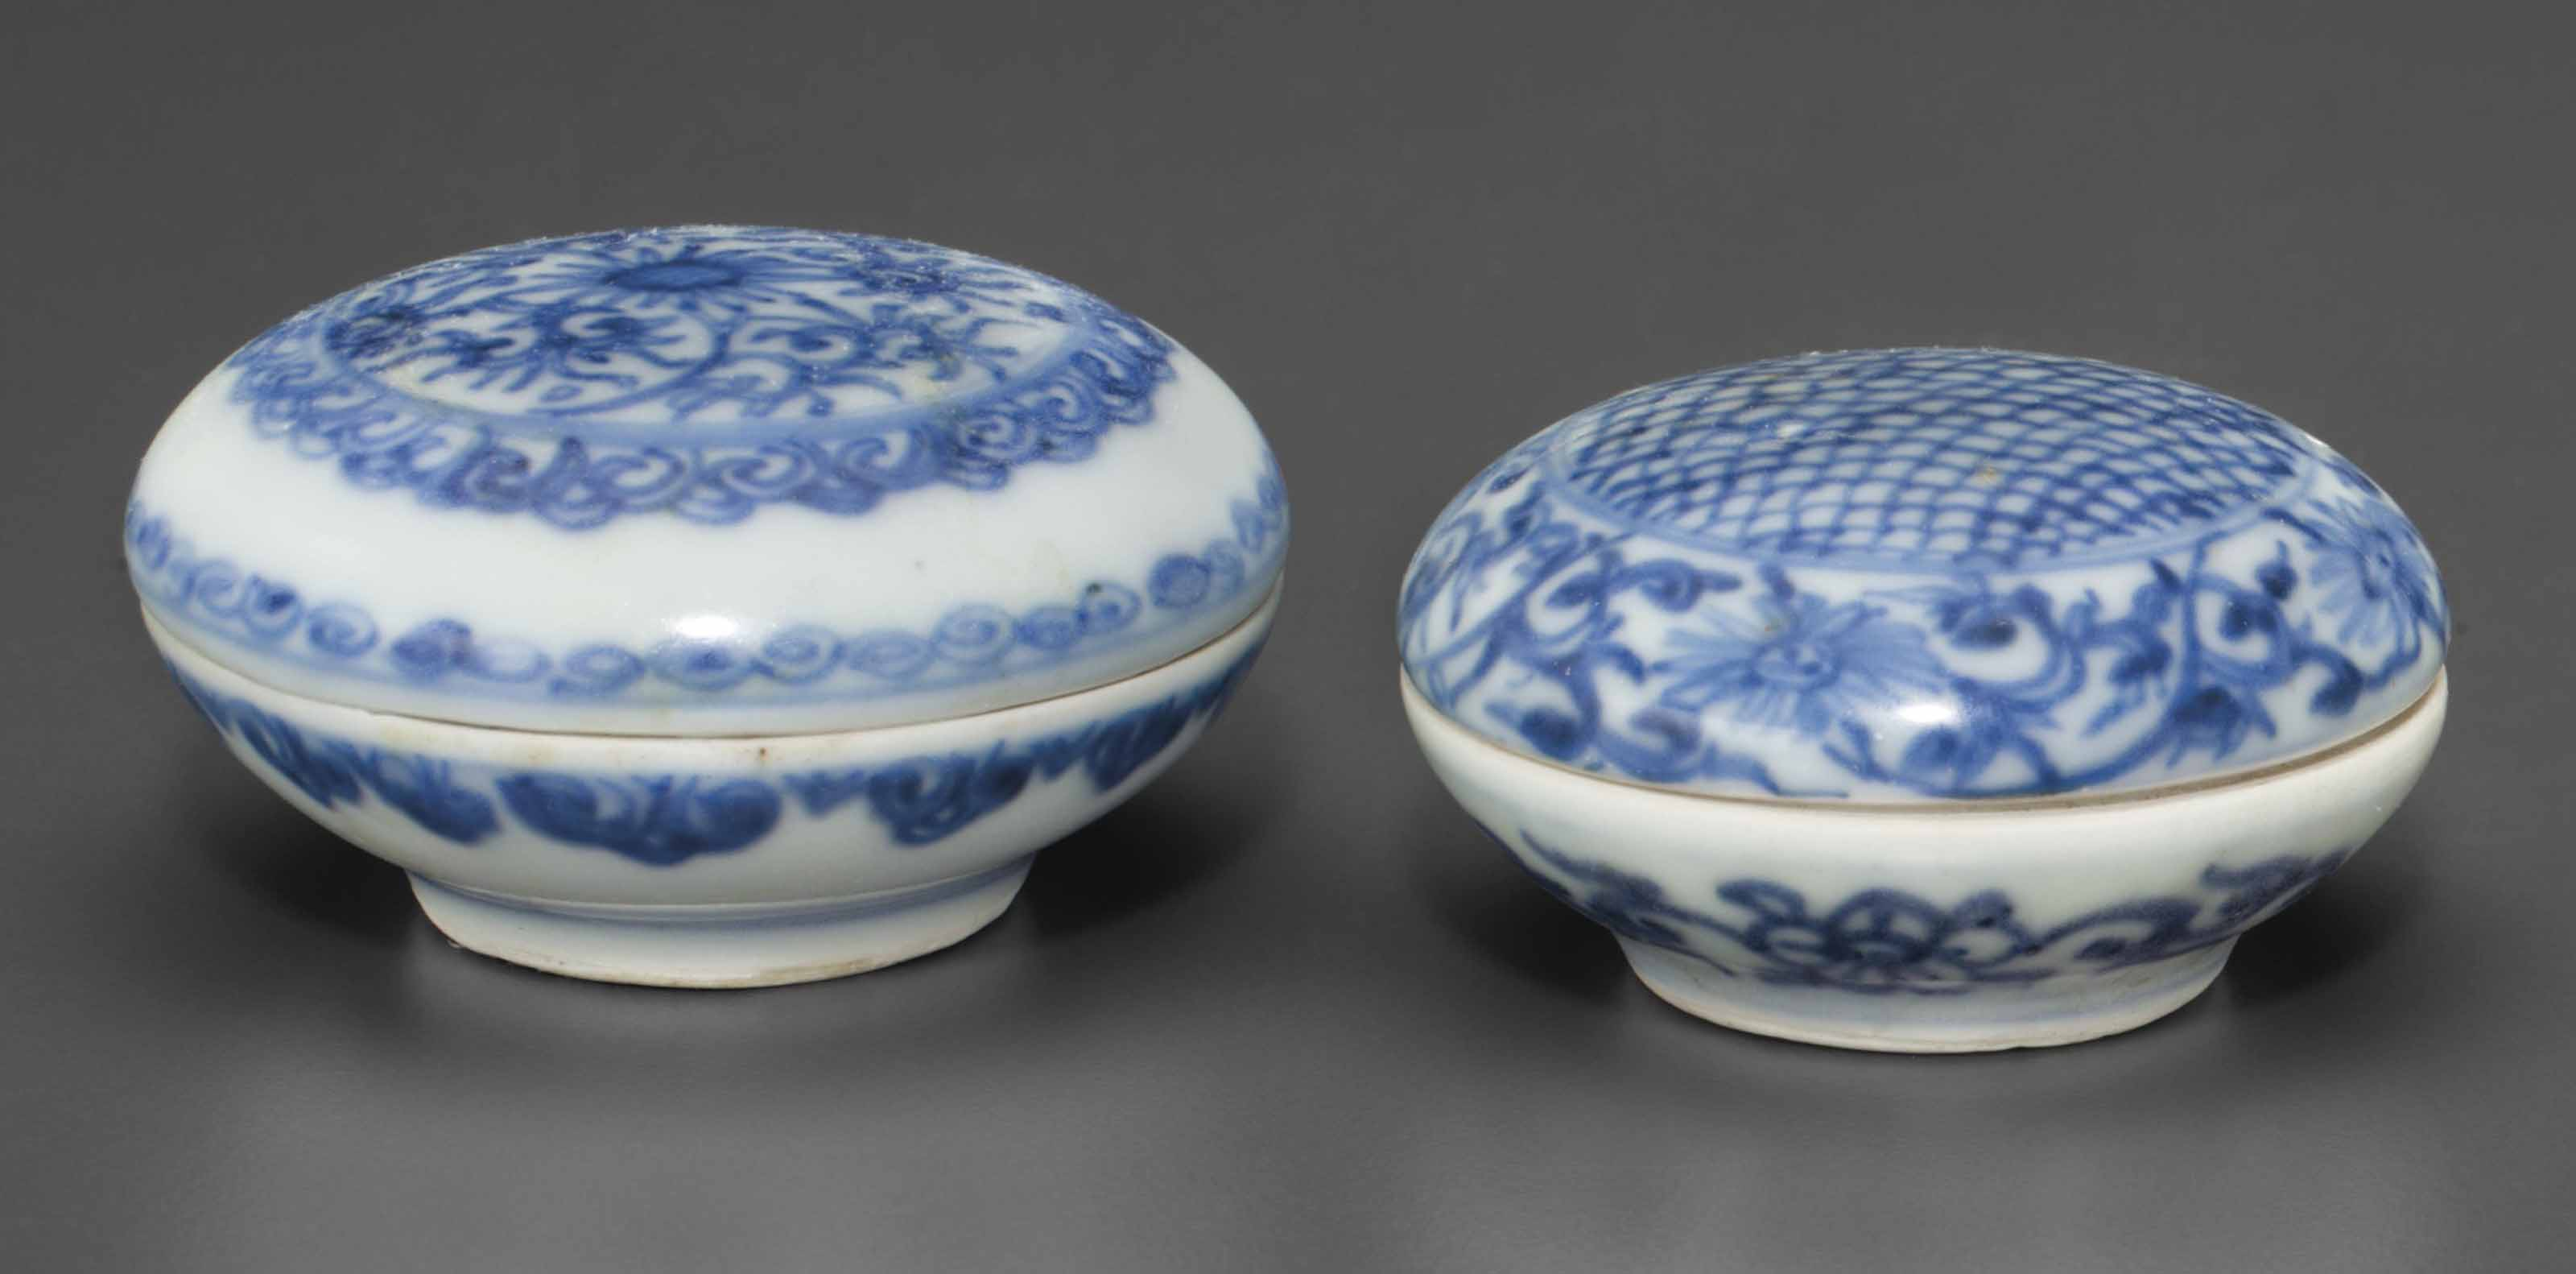 TWO SMALL BLUE AND WHITE CIRCU